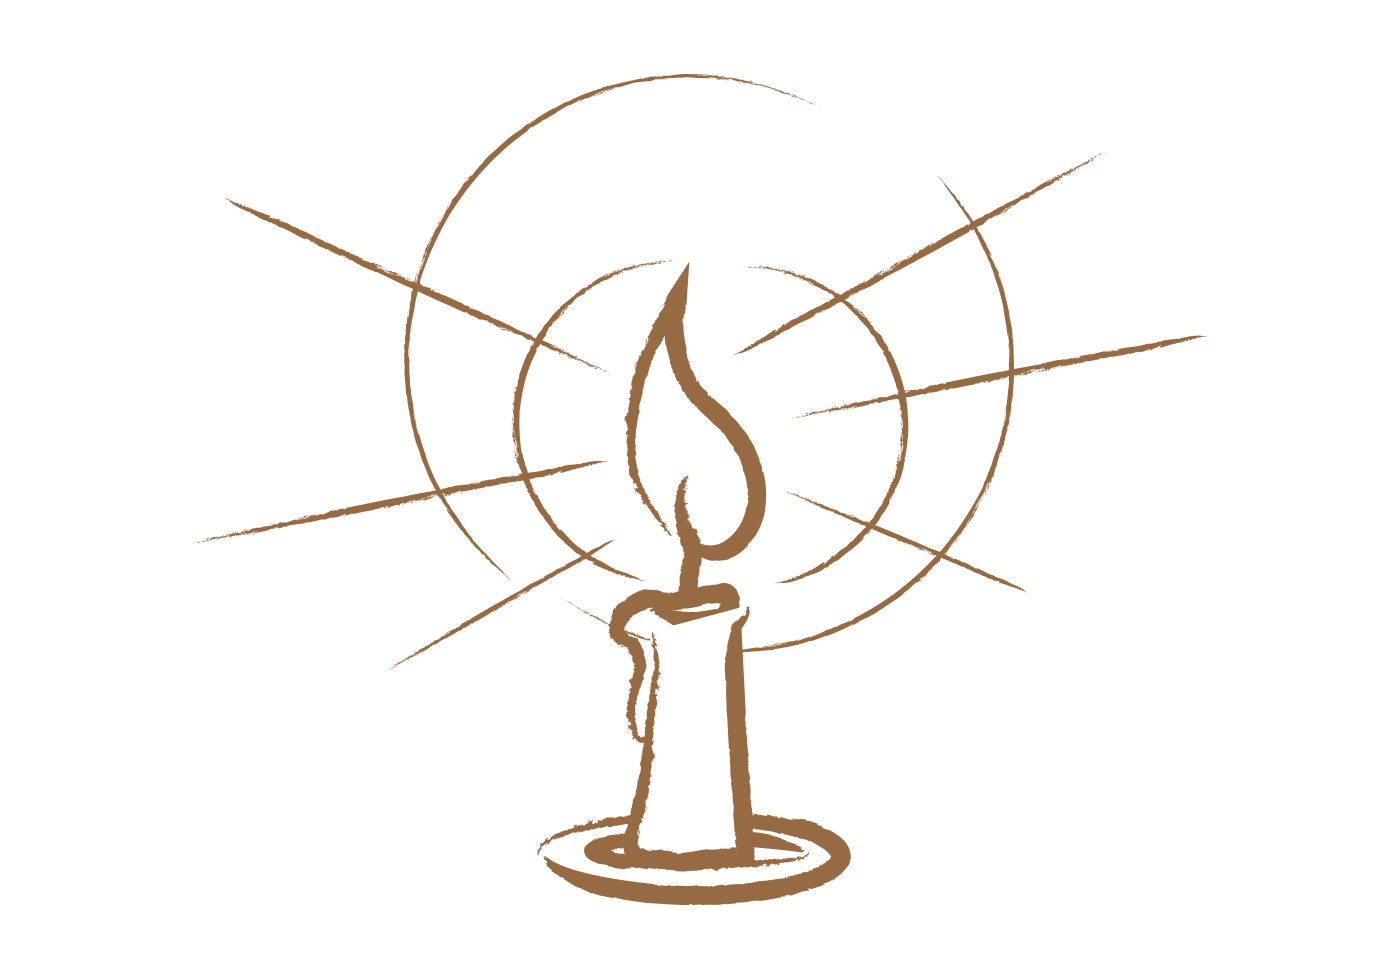 Candlelight Vector Download Free Vector Art Stock